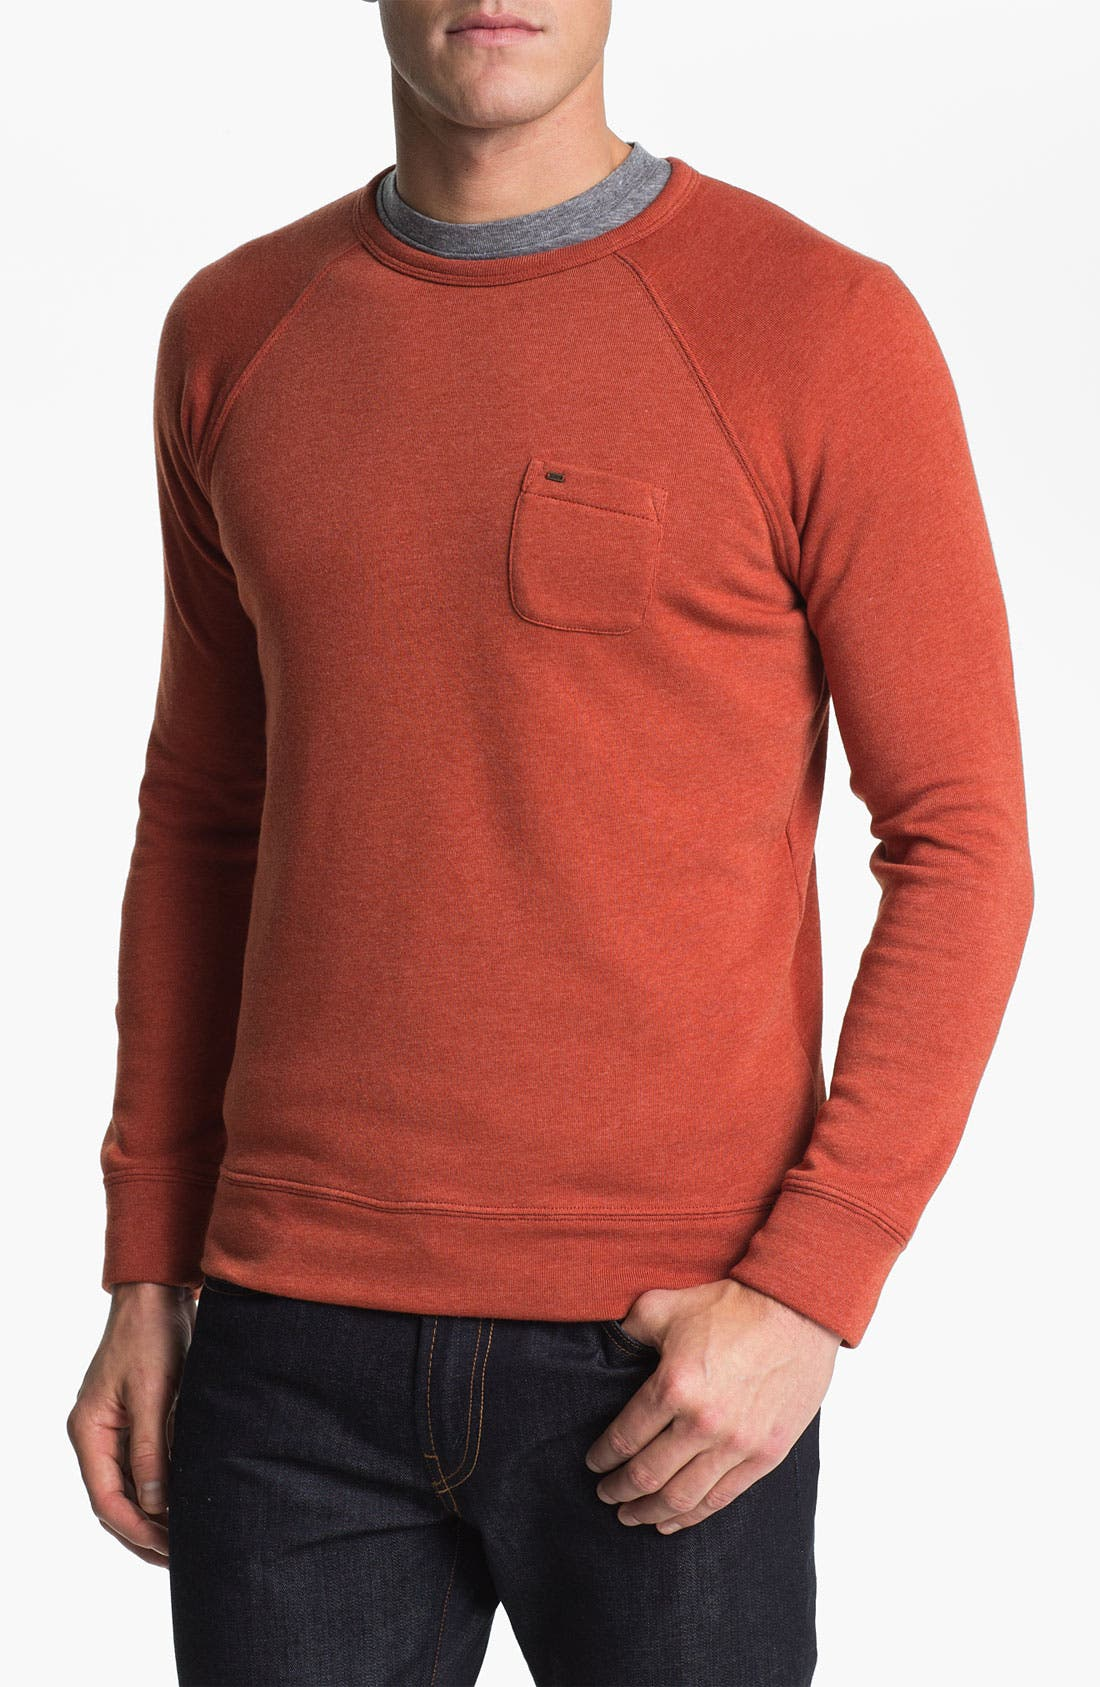 Alternate Image 1 Selected - Obey 'Lofty Creature Comforts' Crewneck Sweatshirt